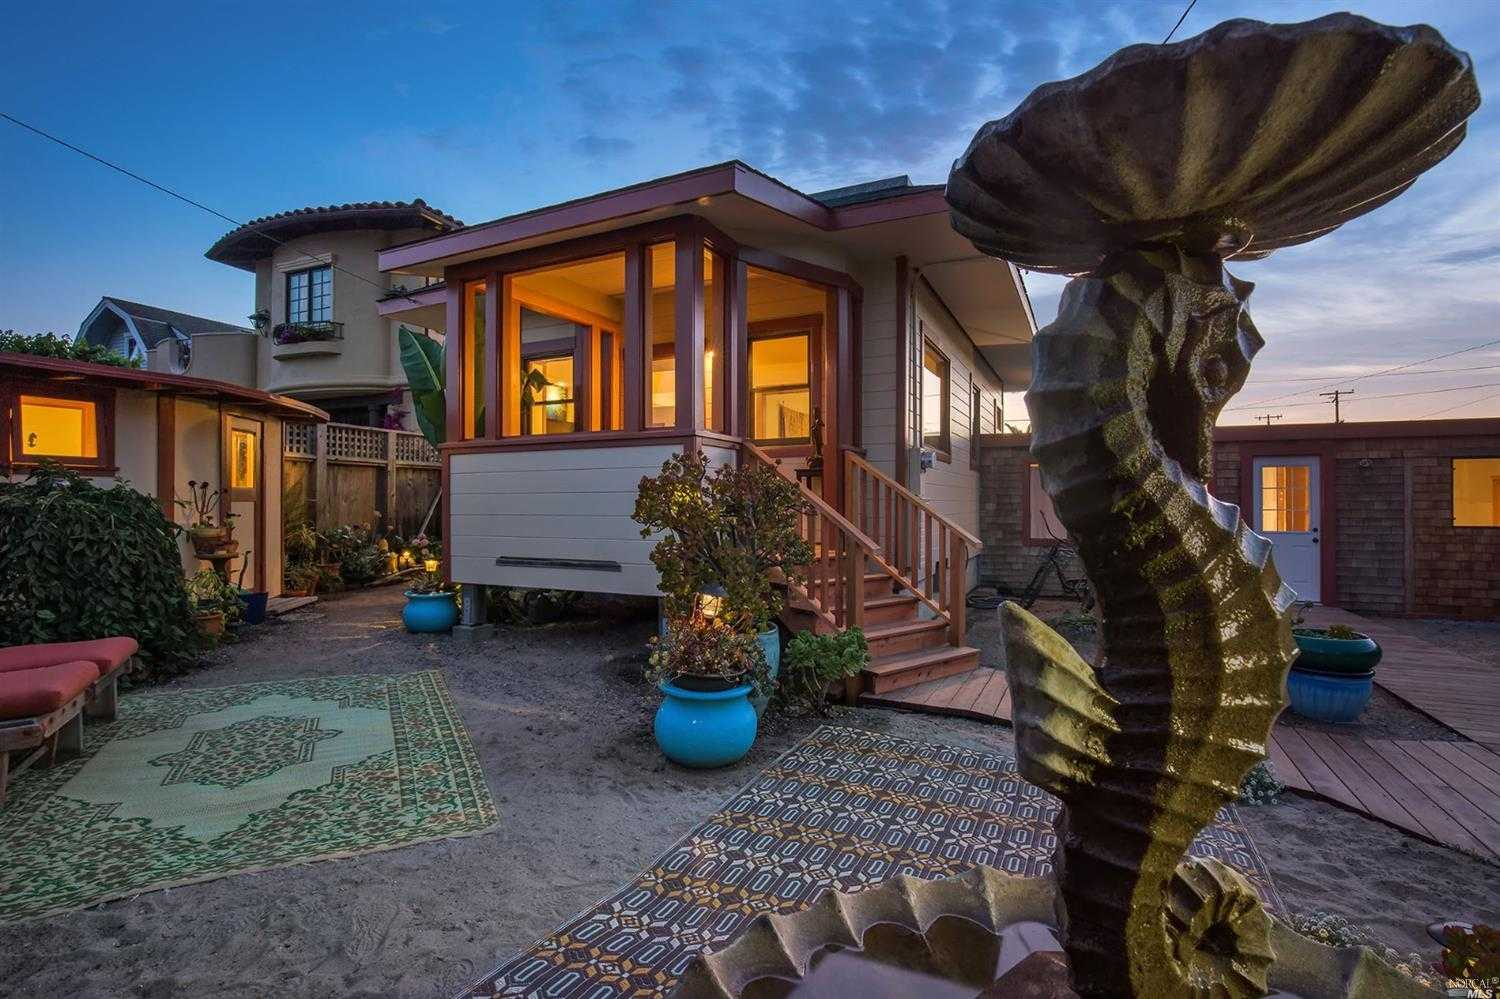 Home for Sale Stinson Beach CA 94970 | PARAGON Real Estate Group